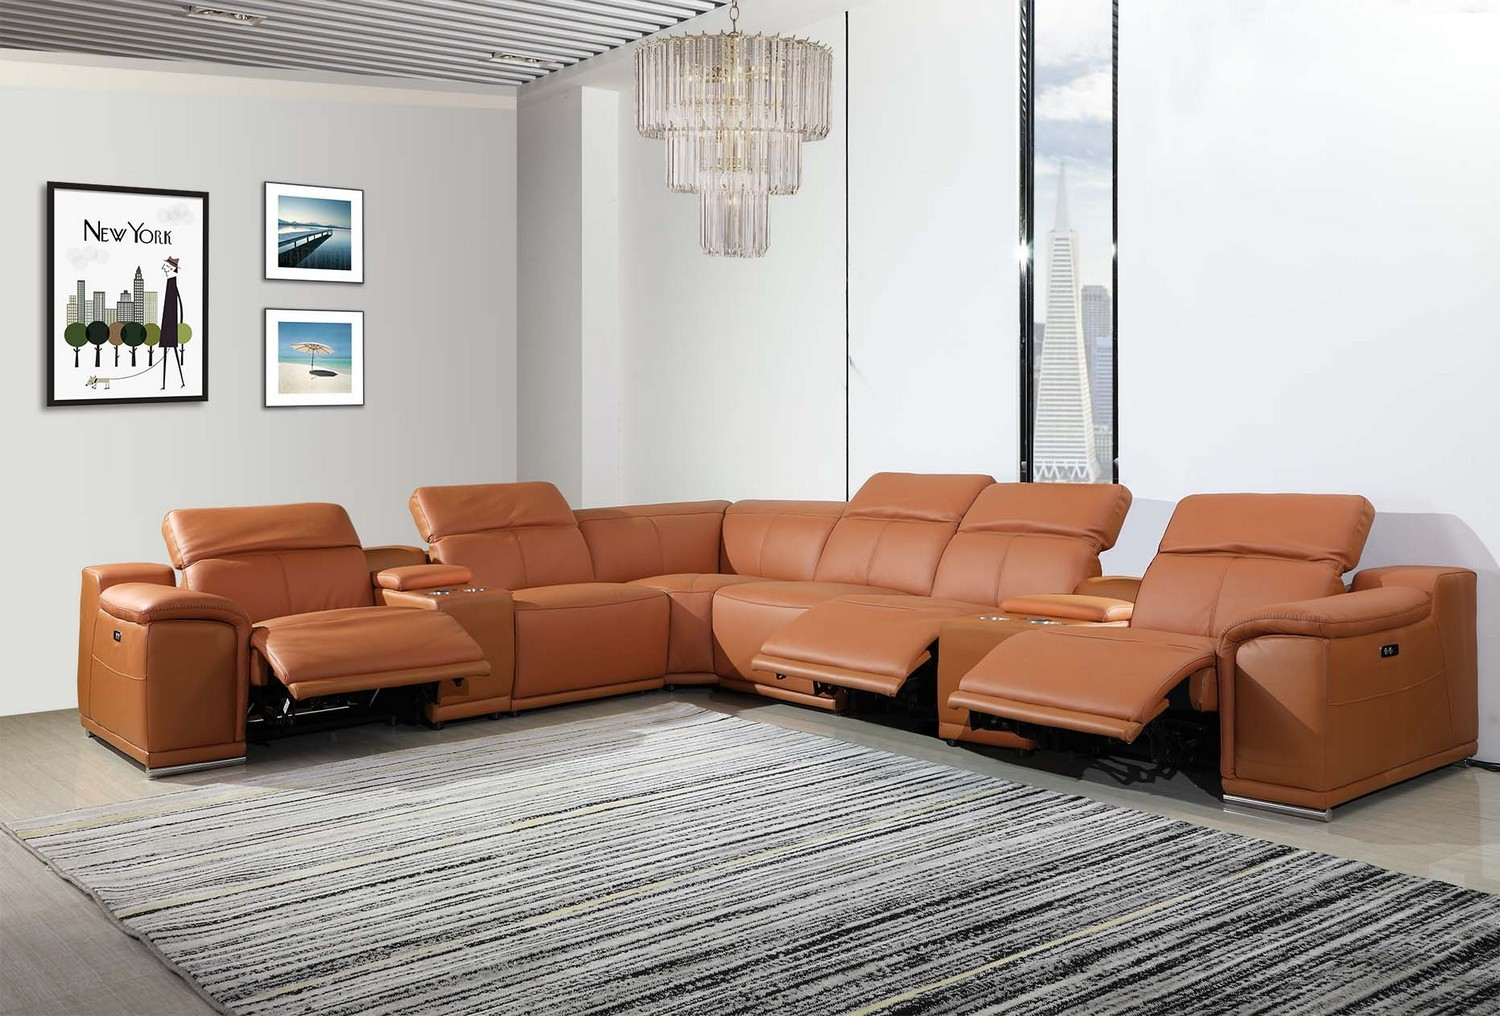 GU-DI9762CM-8PC 8 pc Orren ellis florence camel italian leather power reclining sectional sofa adjustable headrests